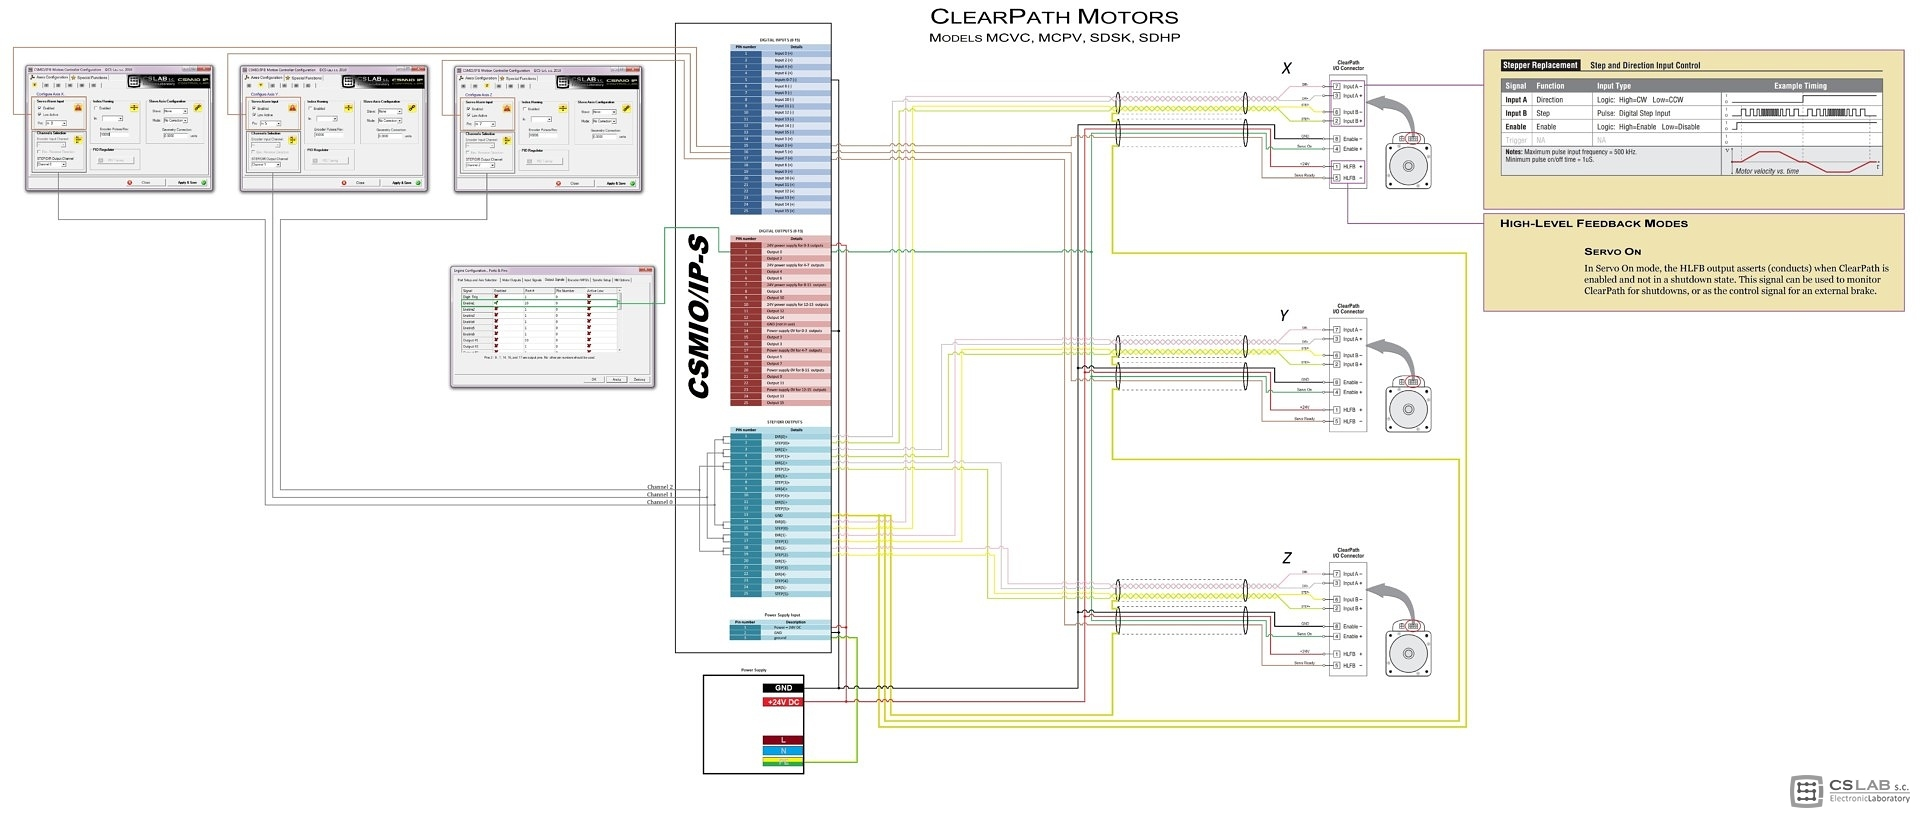 Csmio Ip S Vs Clearpath Motors Connection Diagram Cs Lab International 454 Wiring